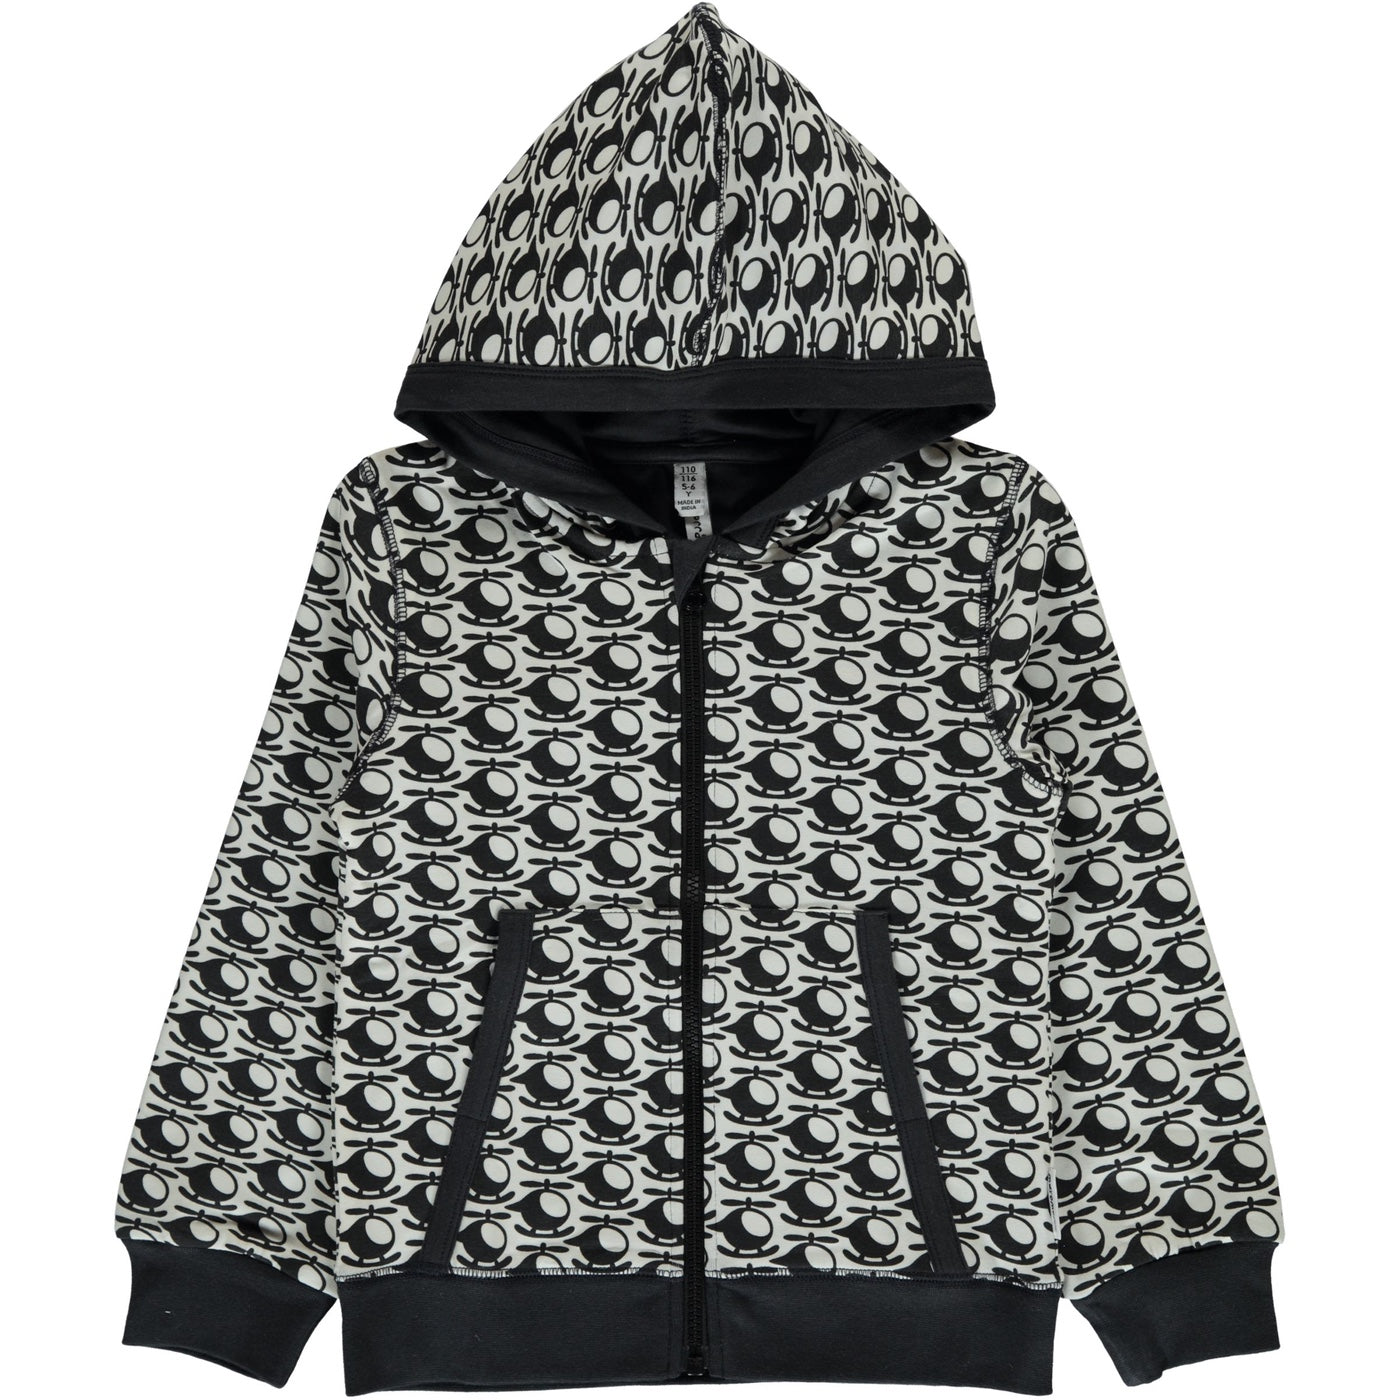 Maxomorra  Hooded Zipper Sweater, Helicopter